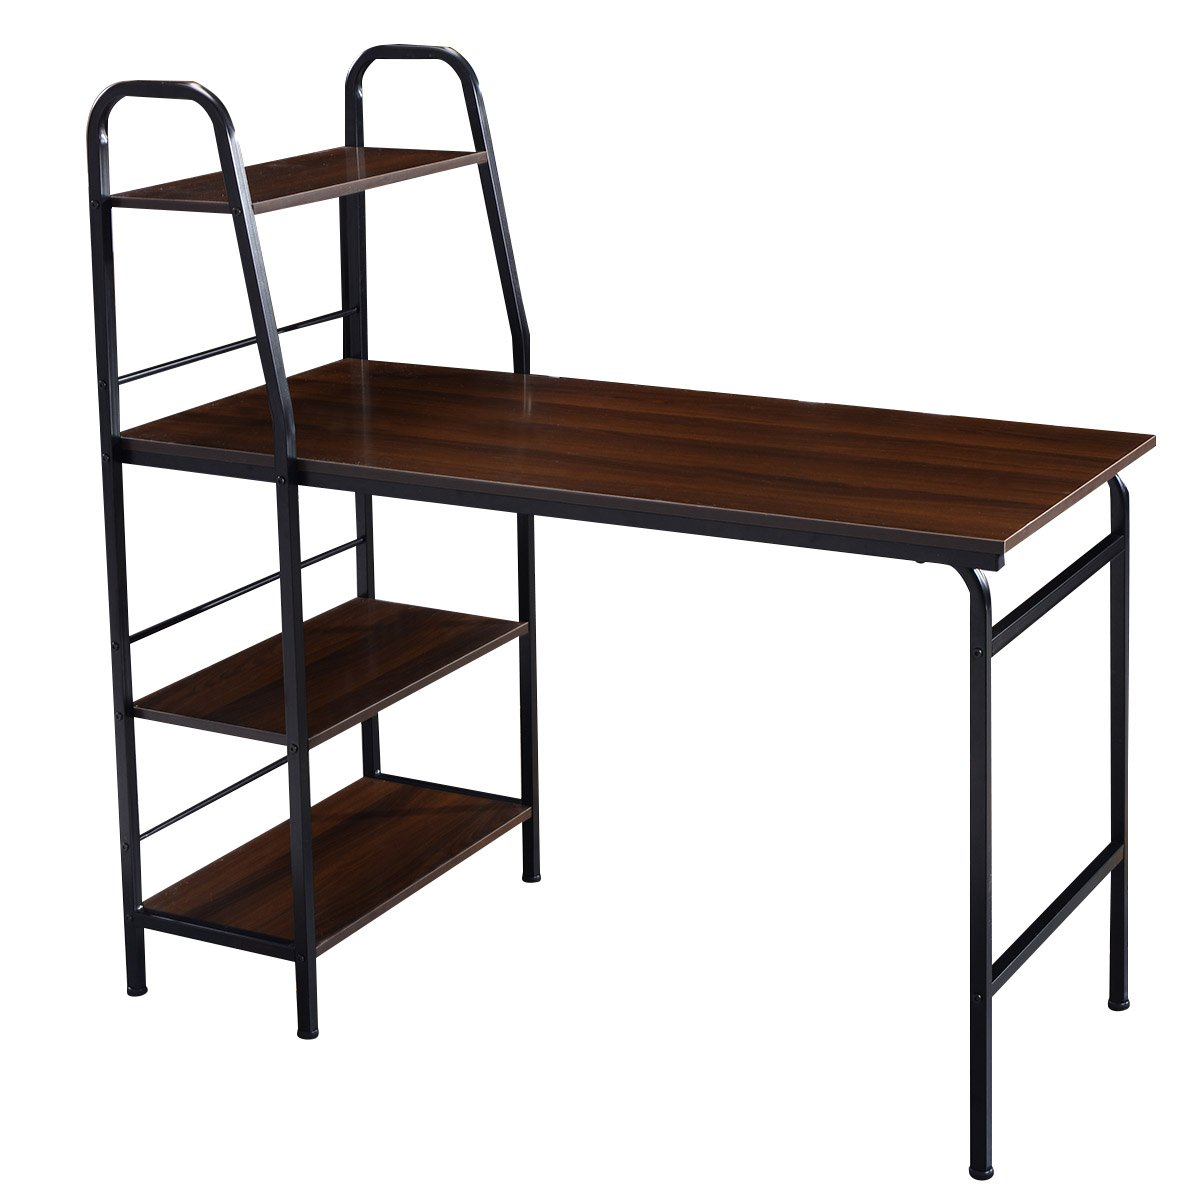 TANGKULA Computer Desk Multi-Function Adjustable Home Office Workstation Modern Style Writing Study Table with 4 Tier Bookshelves.